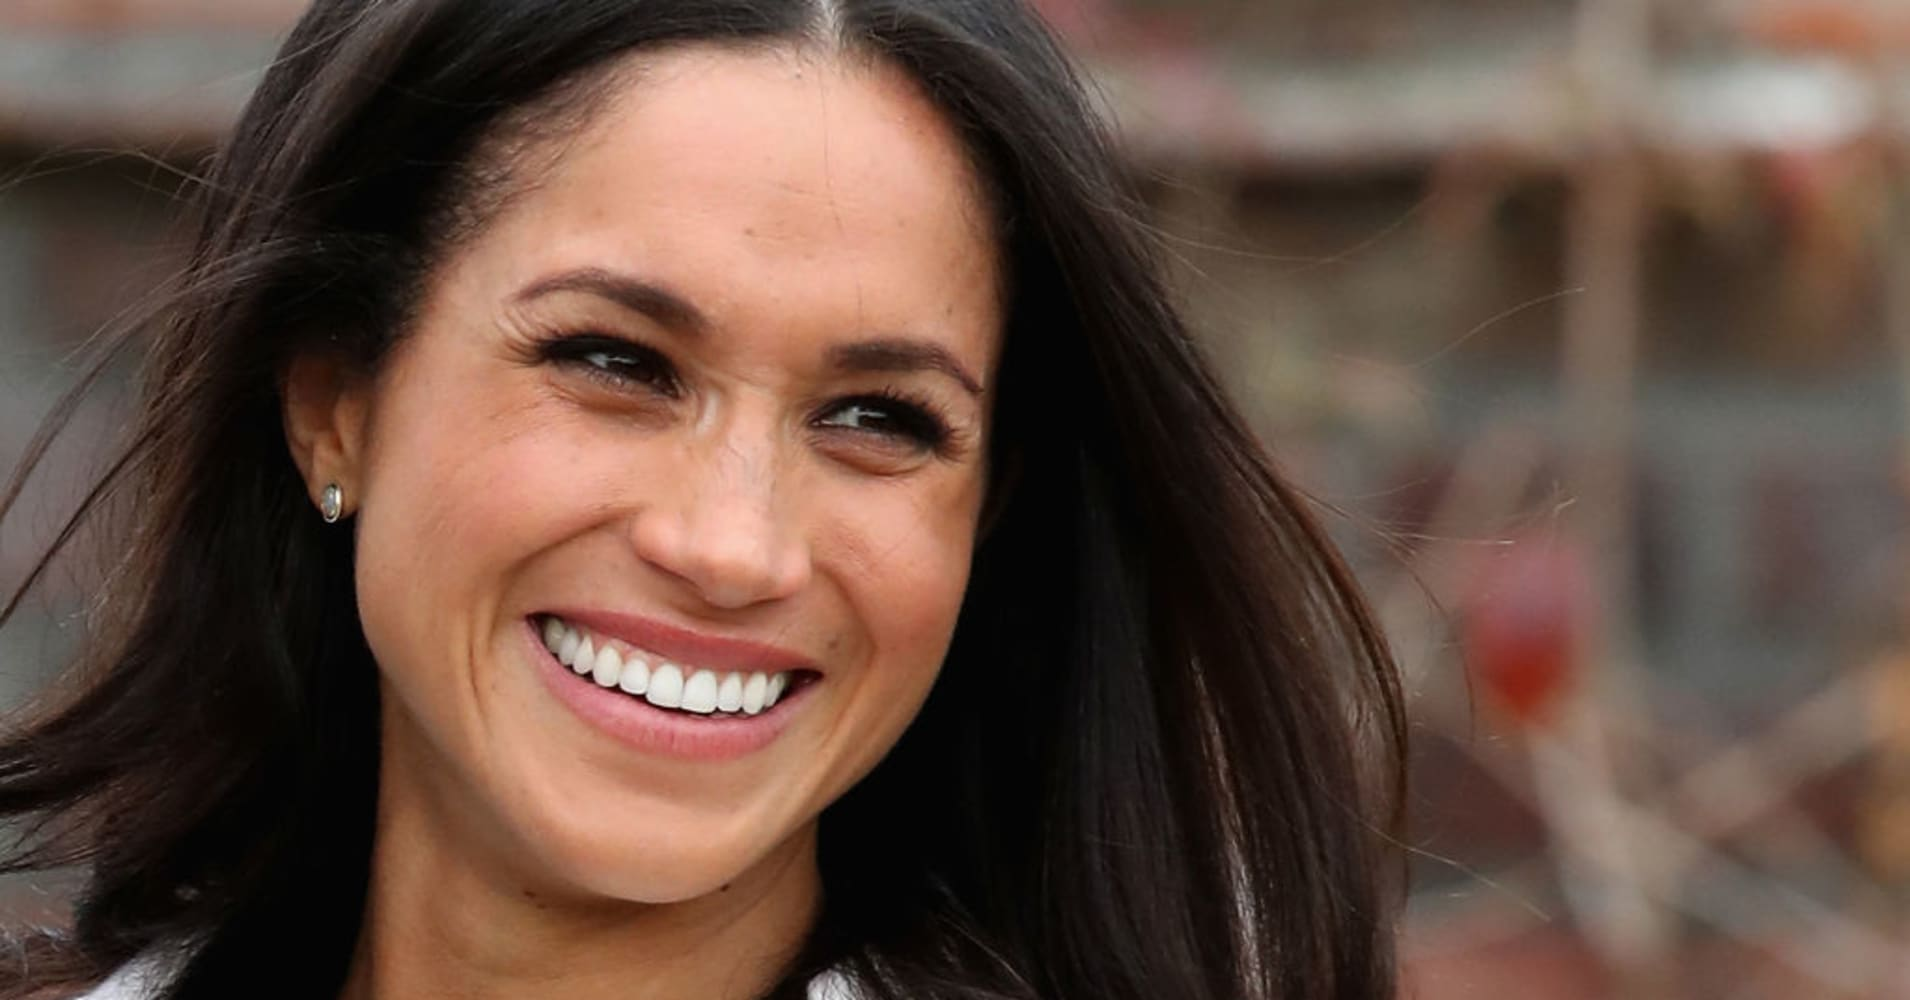 Meghan Markle Just Deleted Her Instagram and Twitter Accounts